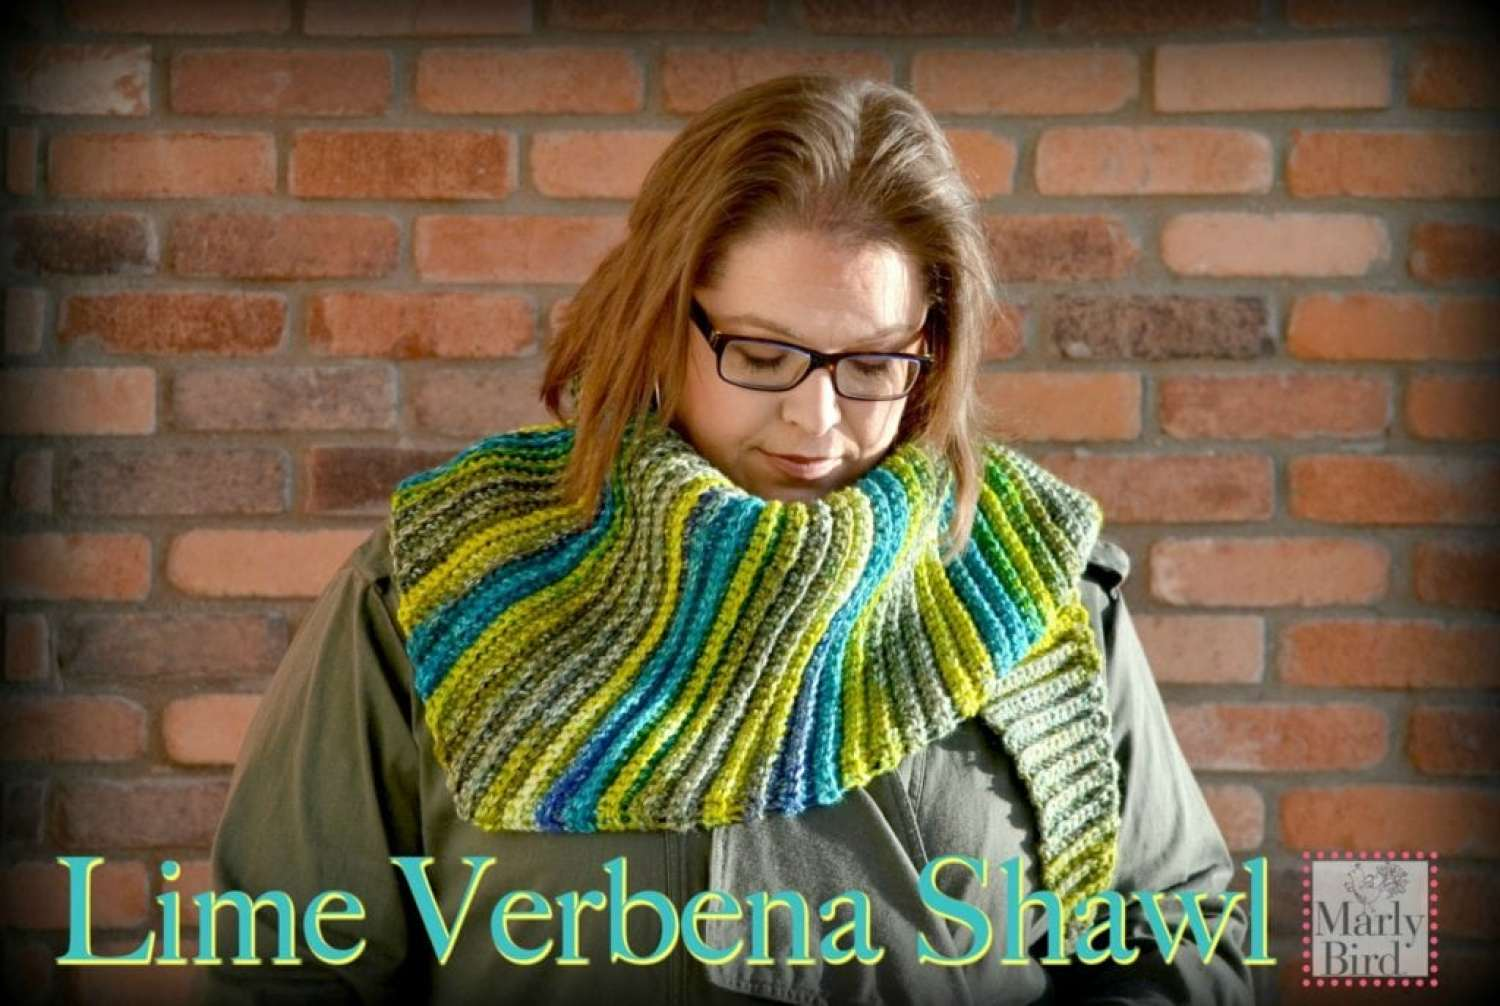 Lime Verbena Shawl by Marly Bird a FREE Crochet Shawl Pattern